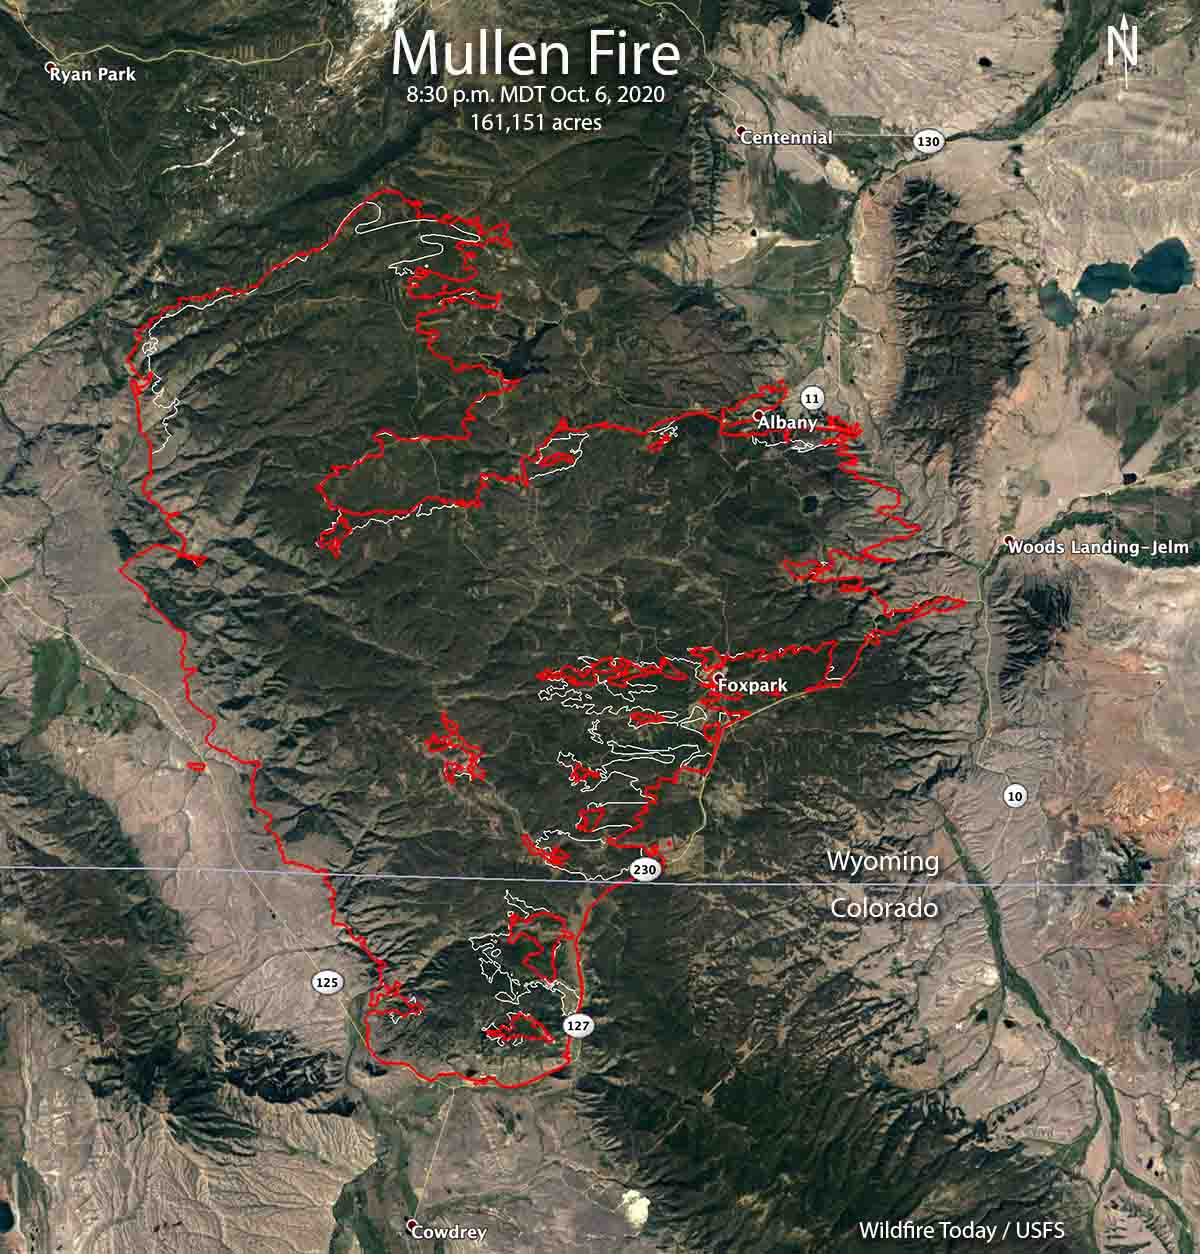 map of the Mullen Fire